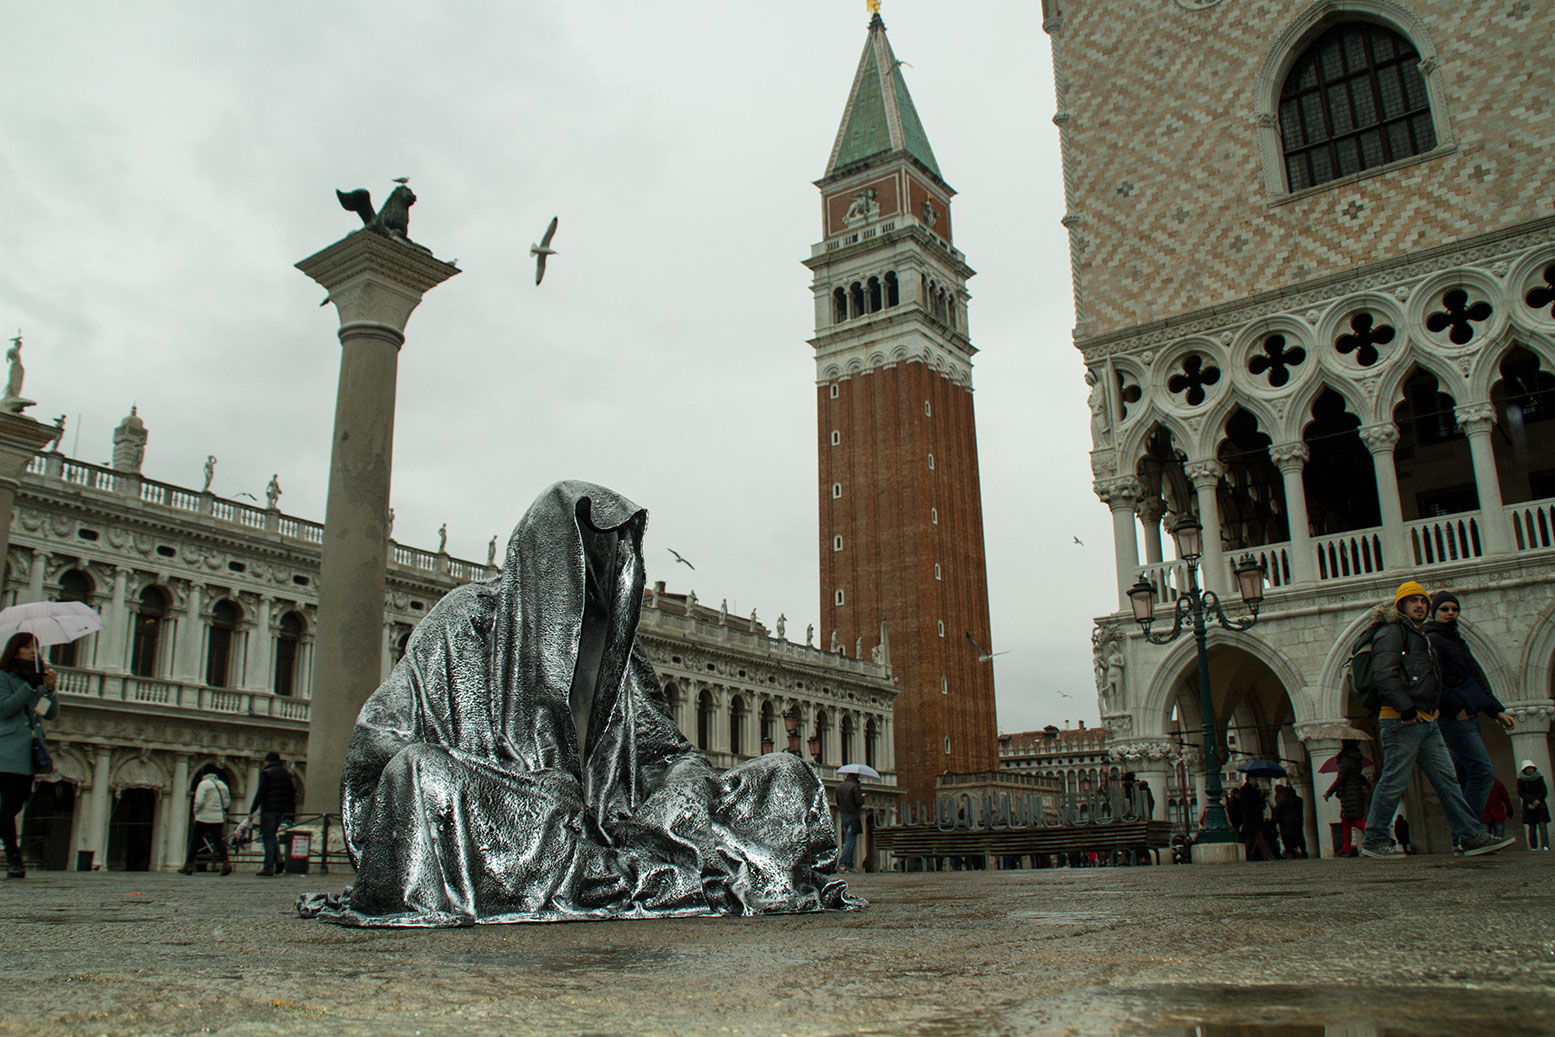 art-biennale-venice-guardians-of-time-manfred-kili-kielnhofer-contemporary-fine-art-design-sculpture-antique-show-7992